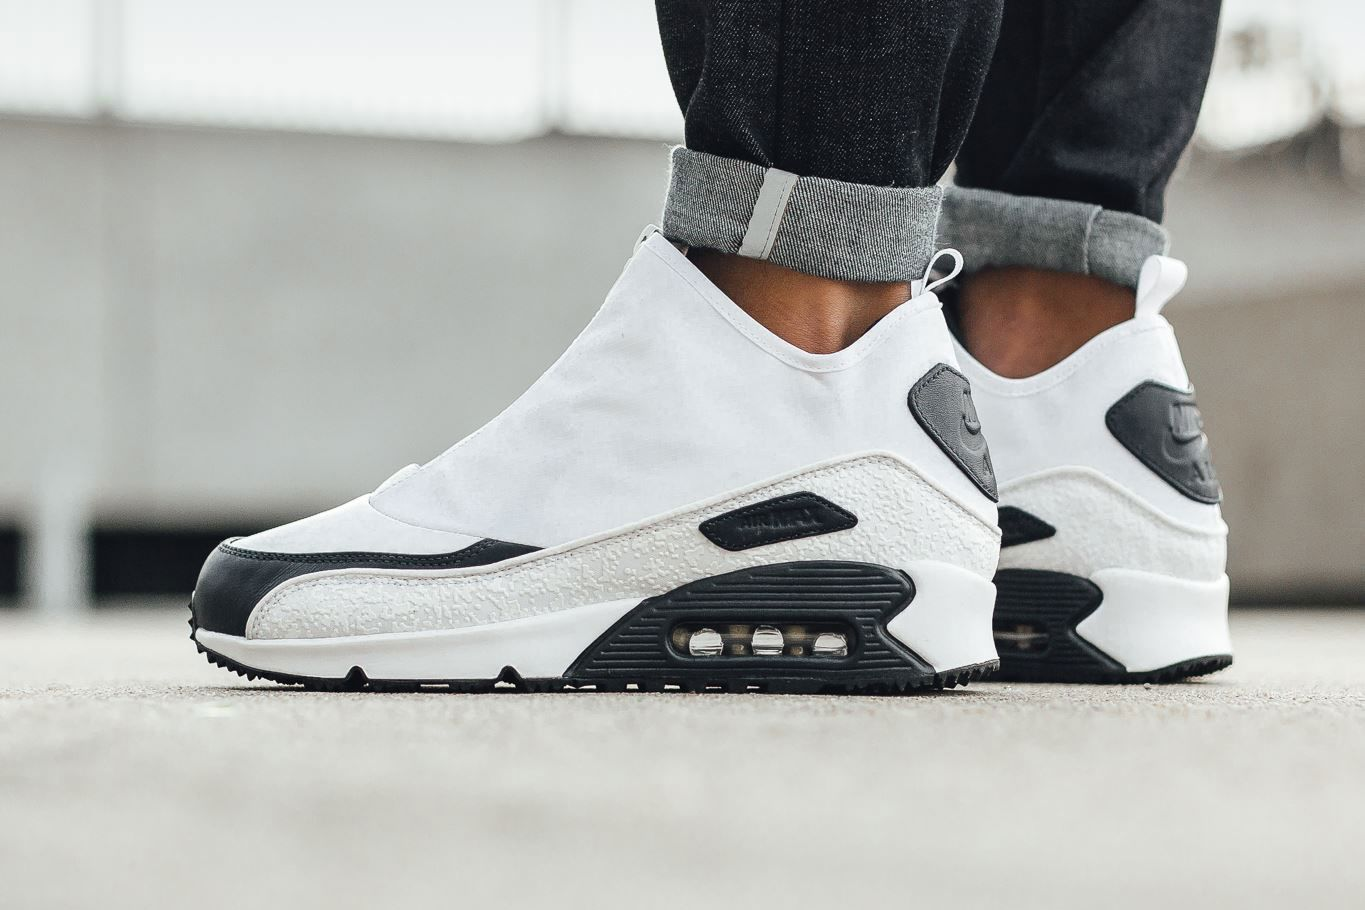 sale retailer b593d de8b9 The Nike Air Max 90 Utility Is Now Available With a Weather-Proof White  Upper